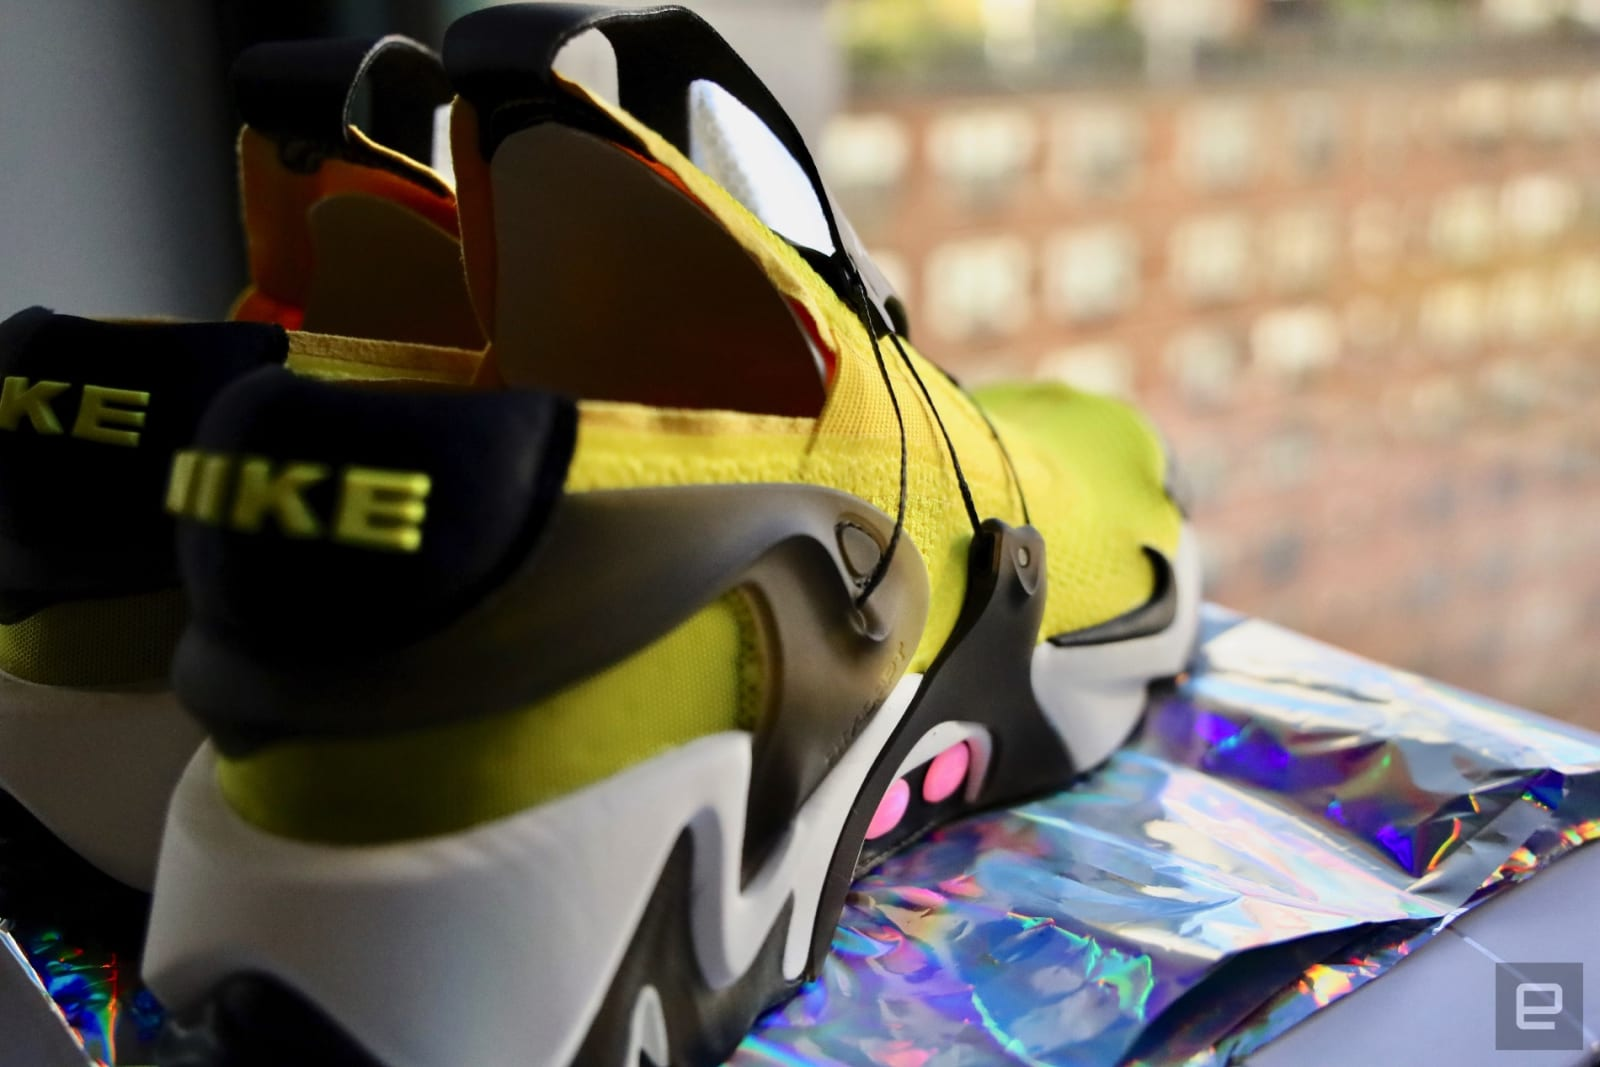 Nike S Adapt Huarache Are Self Lacing Sneakers You Ll Actually Want To Wear Engadget